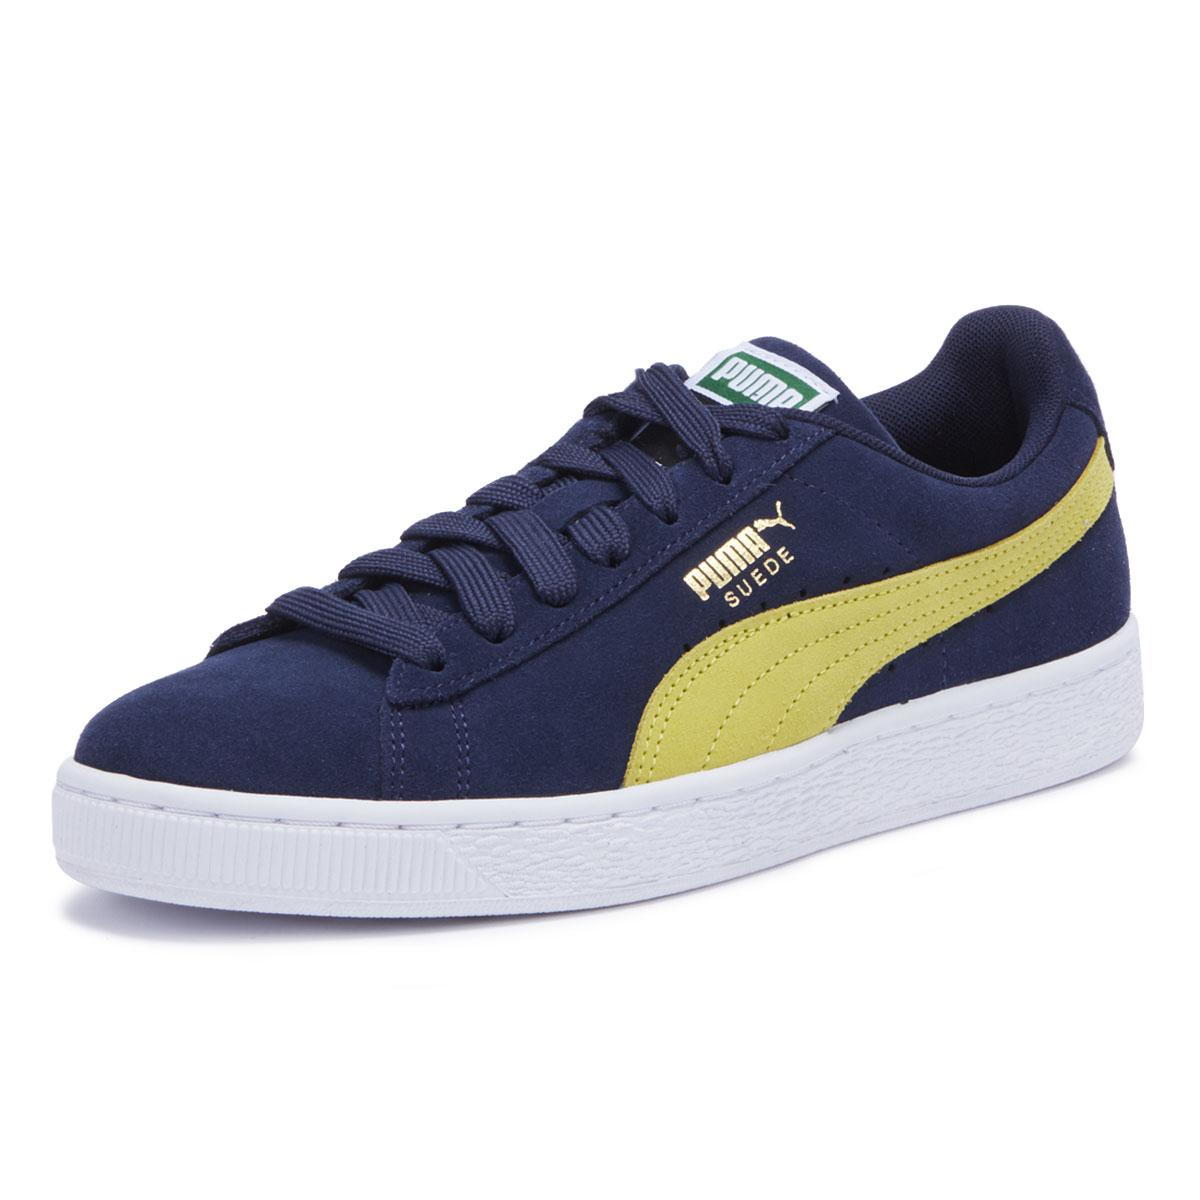 d72c2d87d085 Lyst - PUMA Unisex Adults  Suede Classic Low-top Sneakers in Blue ...